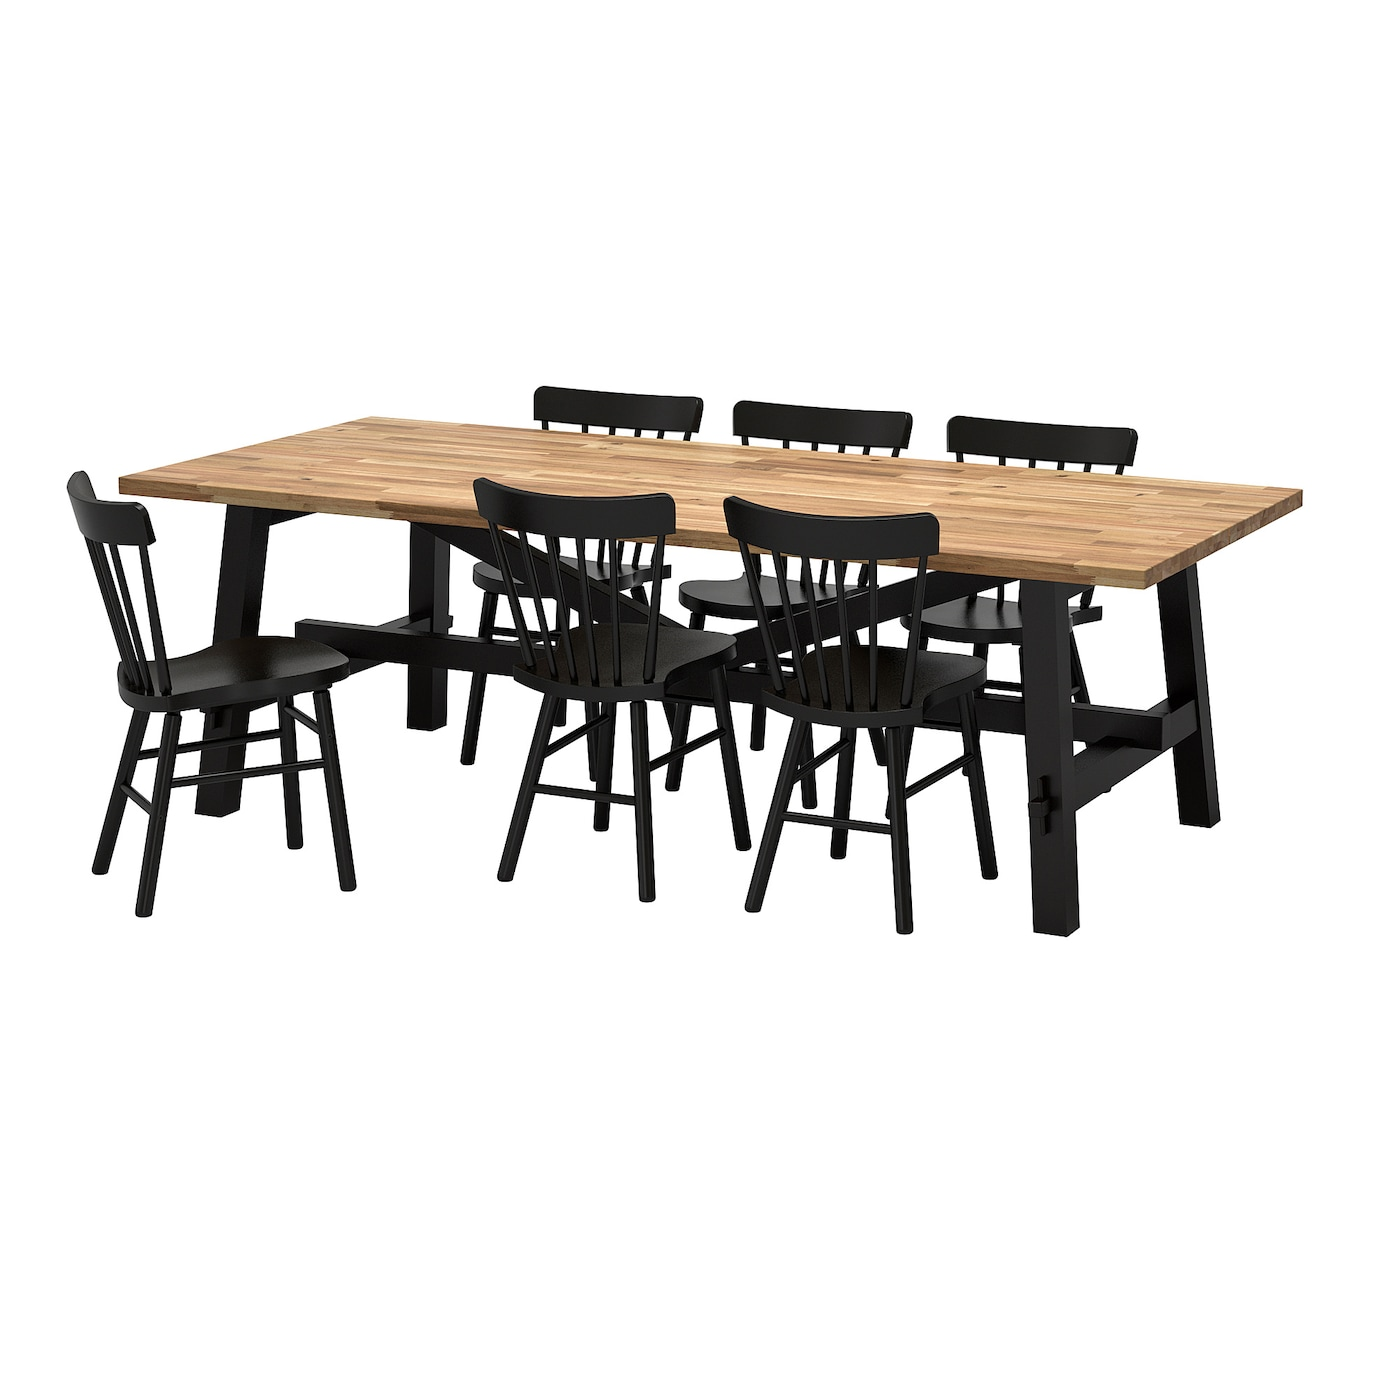 norraryd skogsta table et 6 chaises acacia noir 235x100 cm. Black Bedroom Furniture Sets. Home Design Ideas